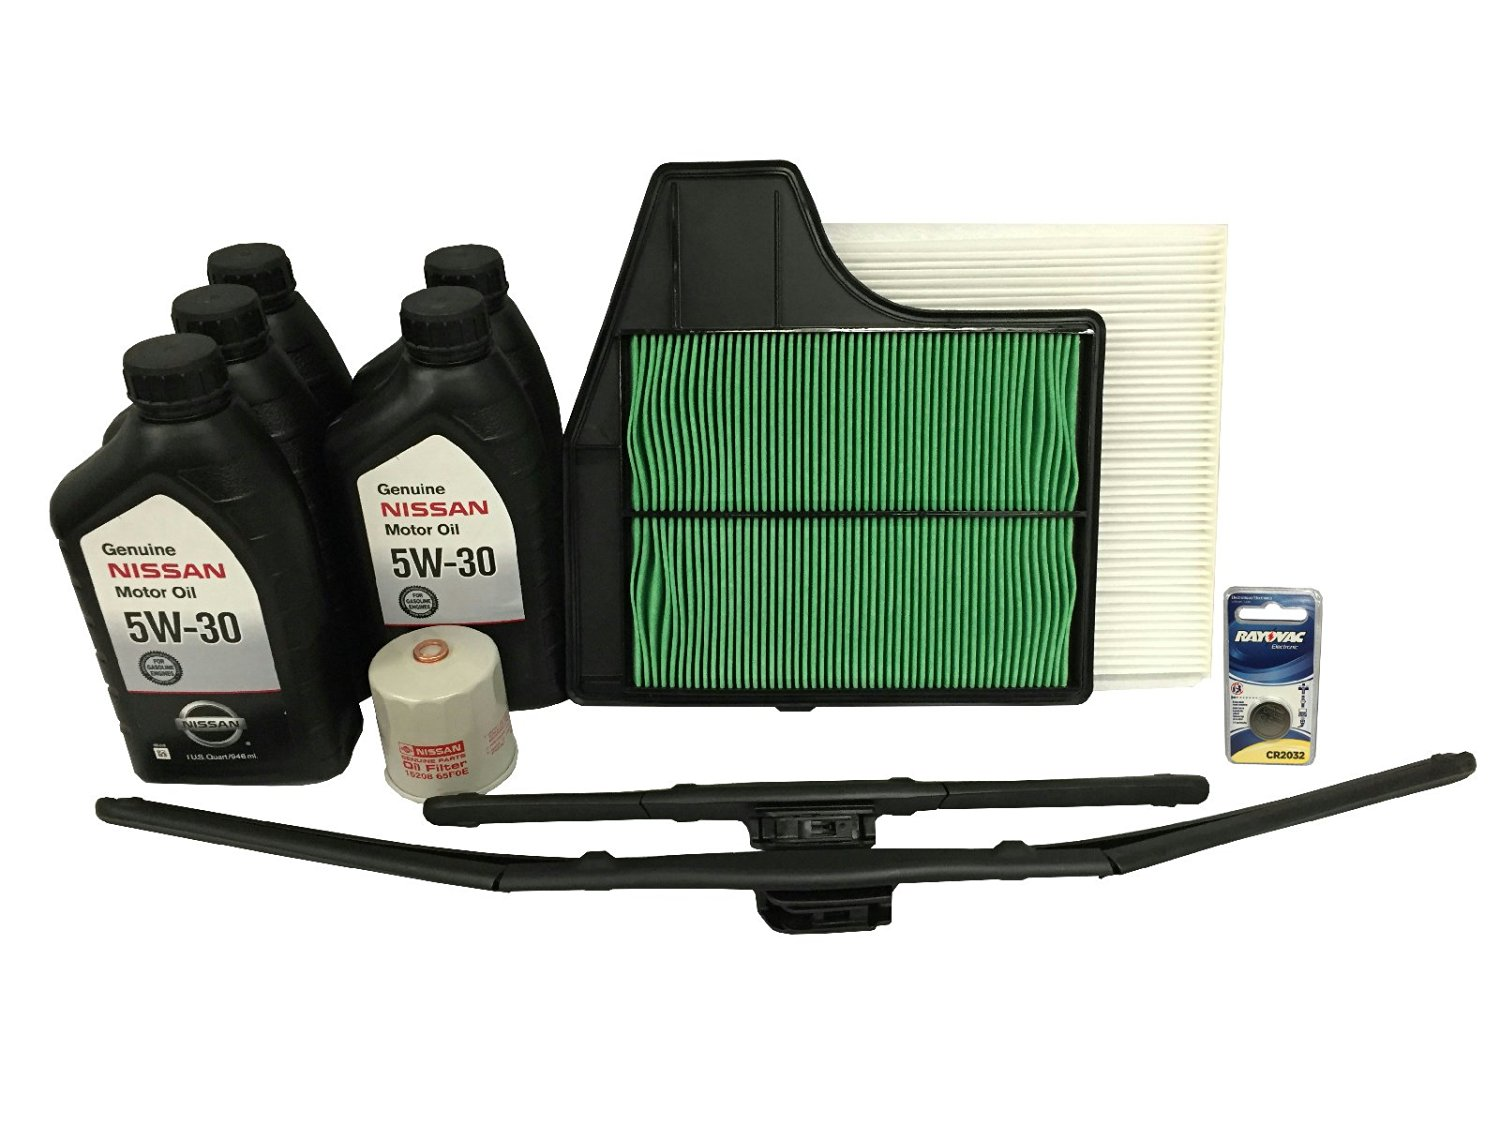 Genuine Nissan OEM 5W-30 Maintenance Kit Nissan Altima 2013-2016 2.5 4-Cylinder